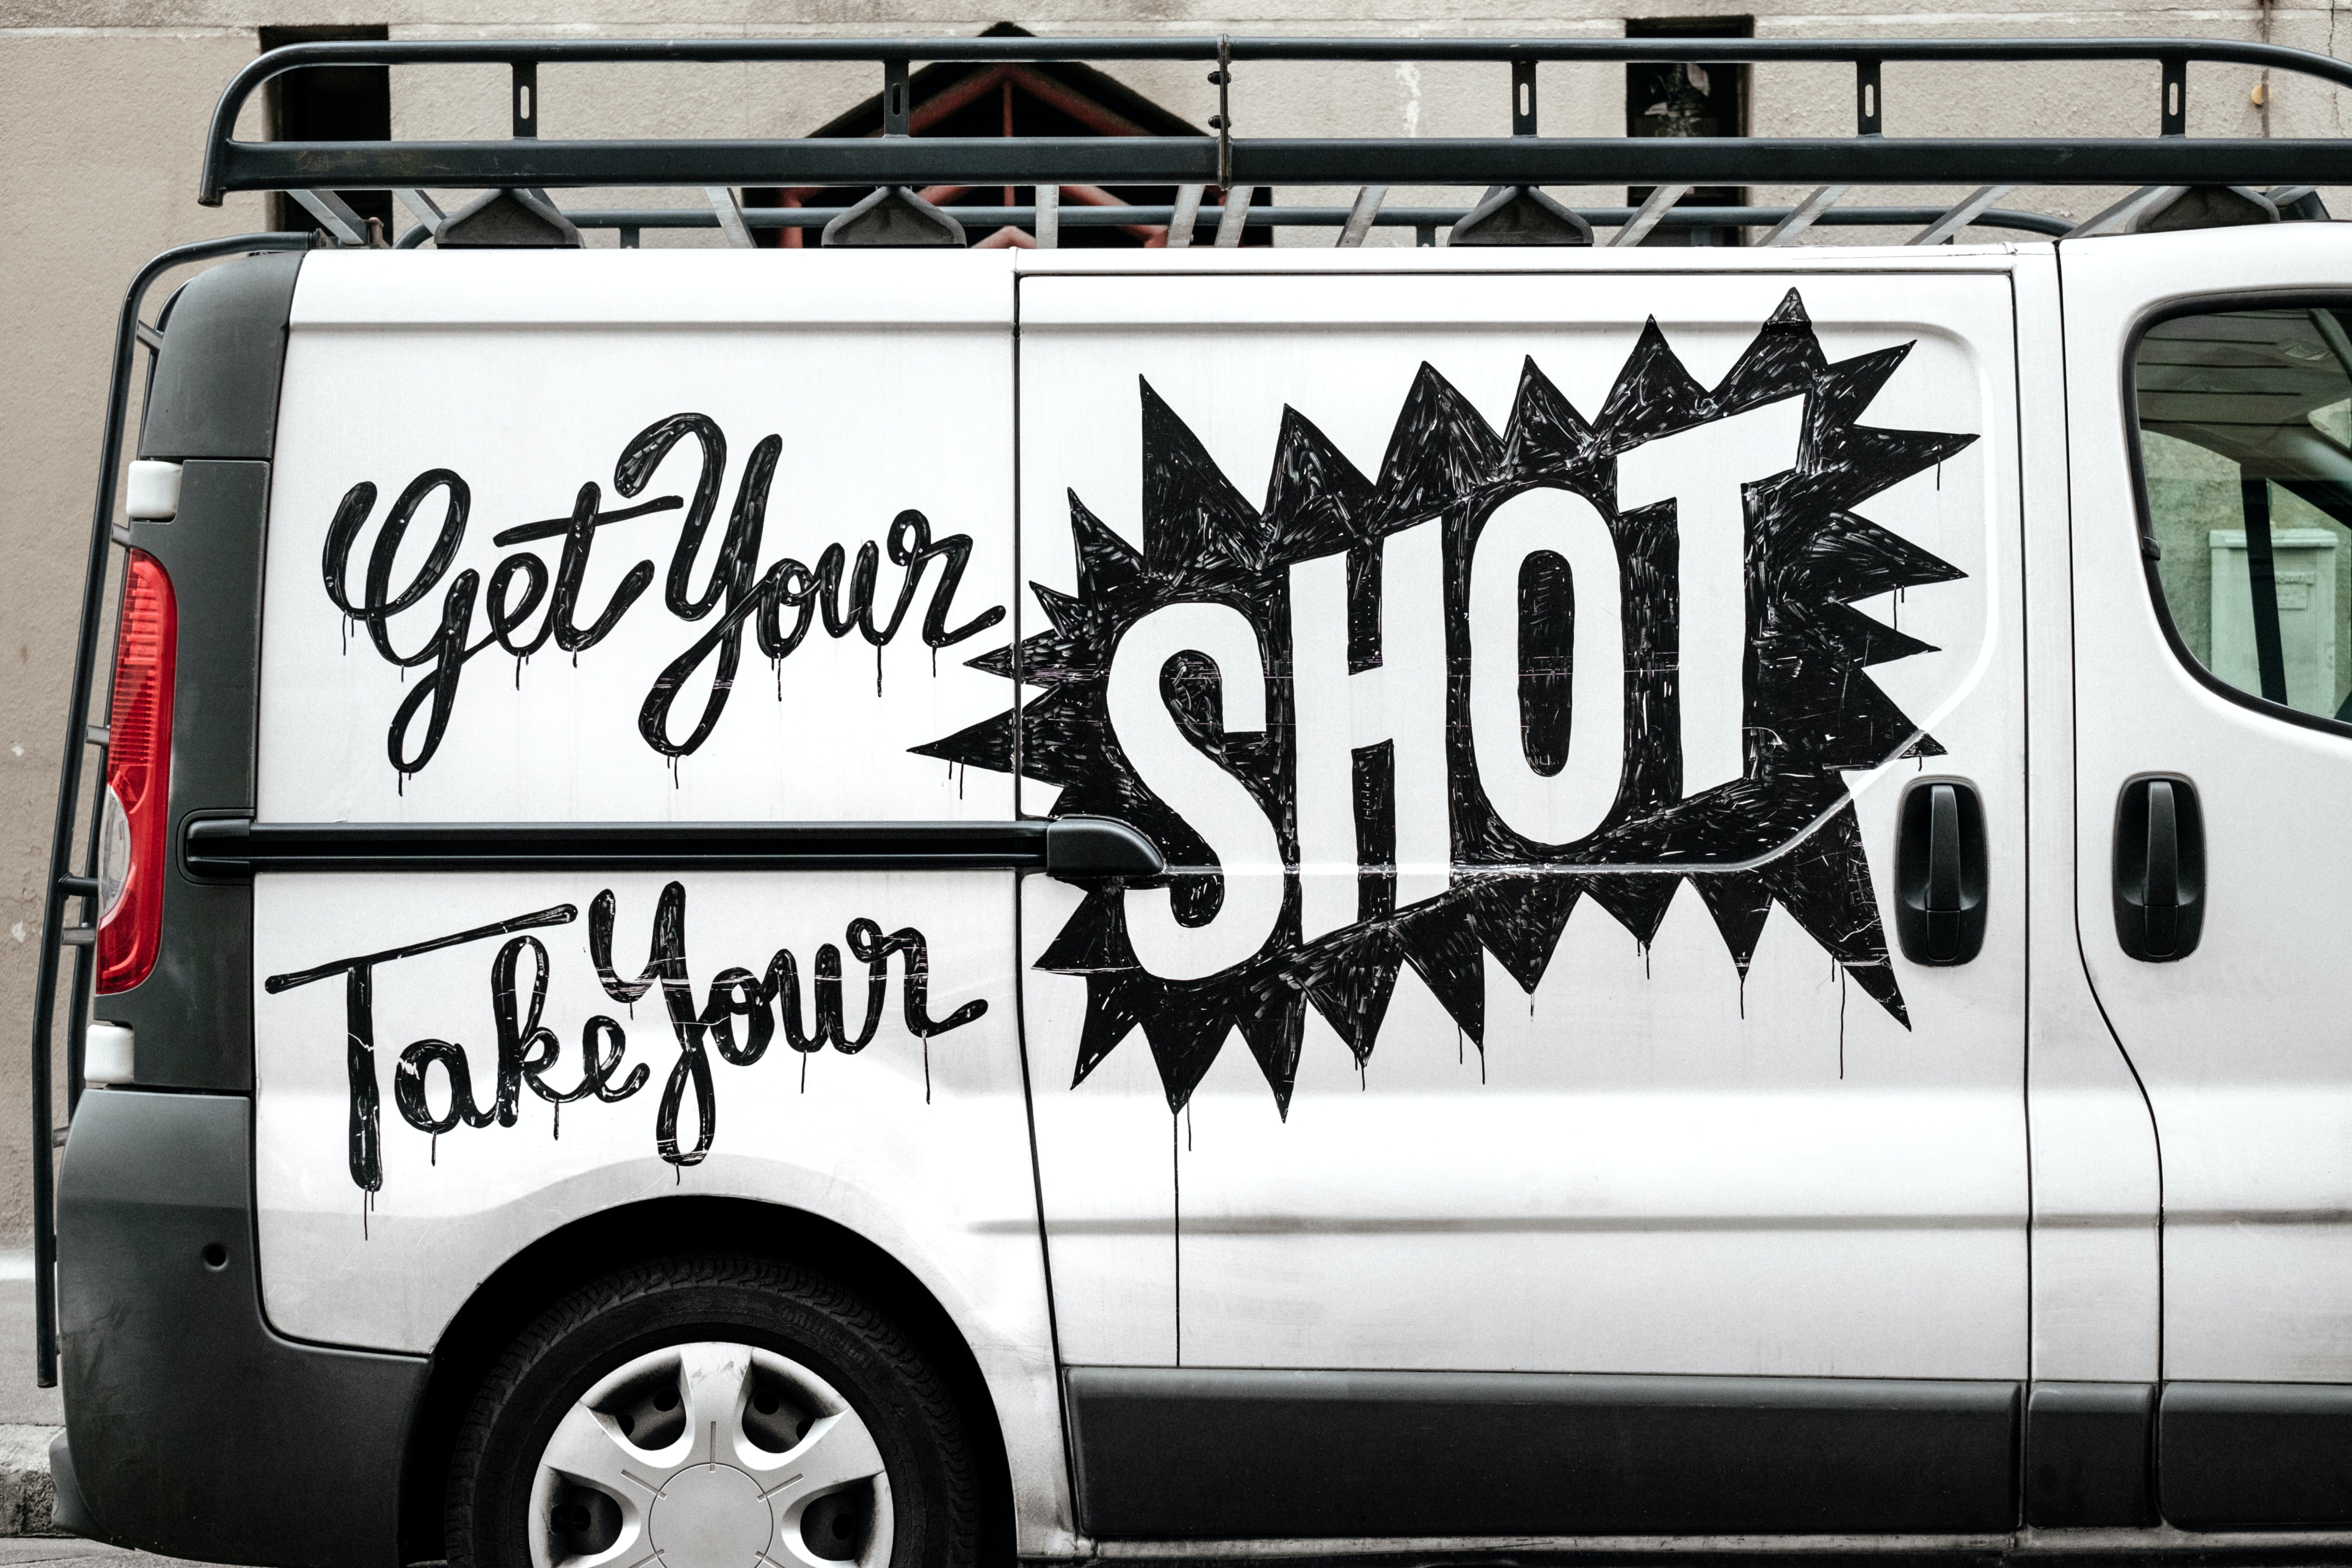 white and black van with Get Your Shot text